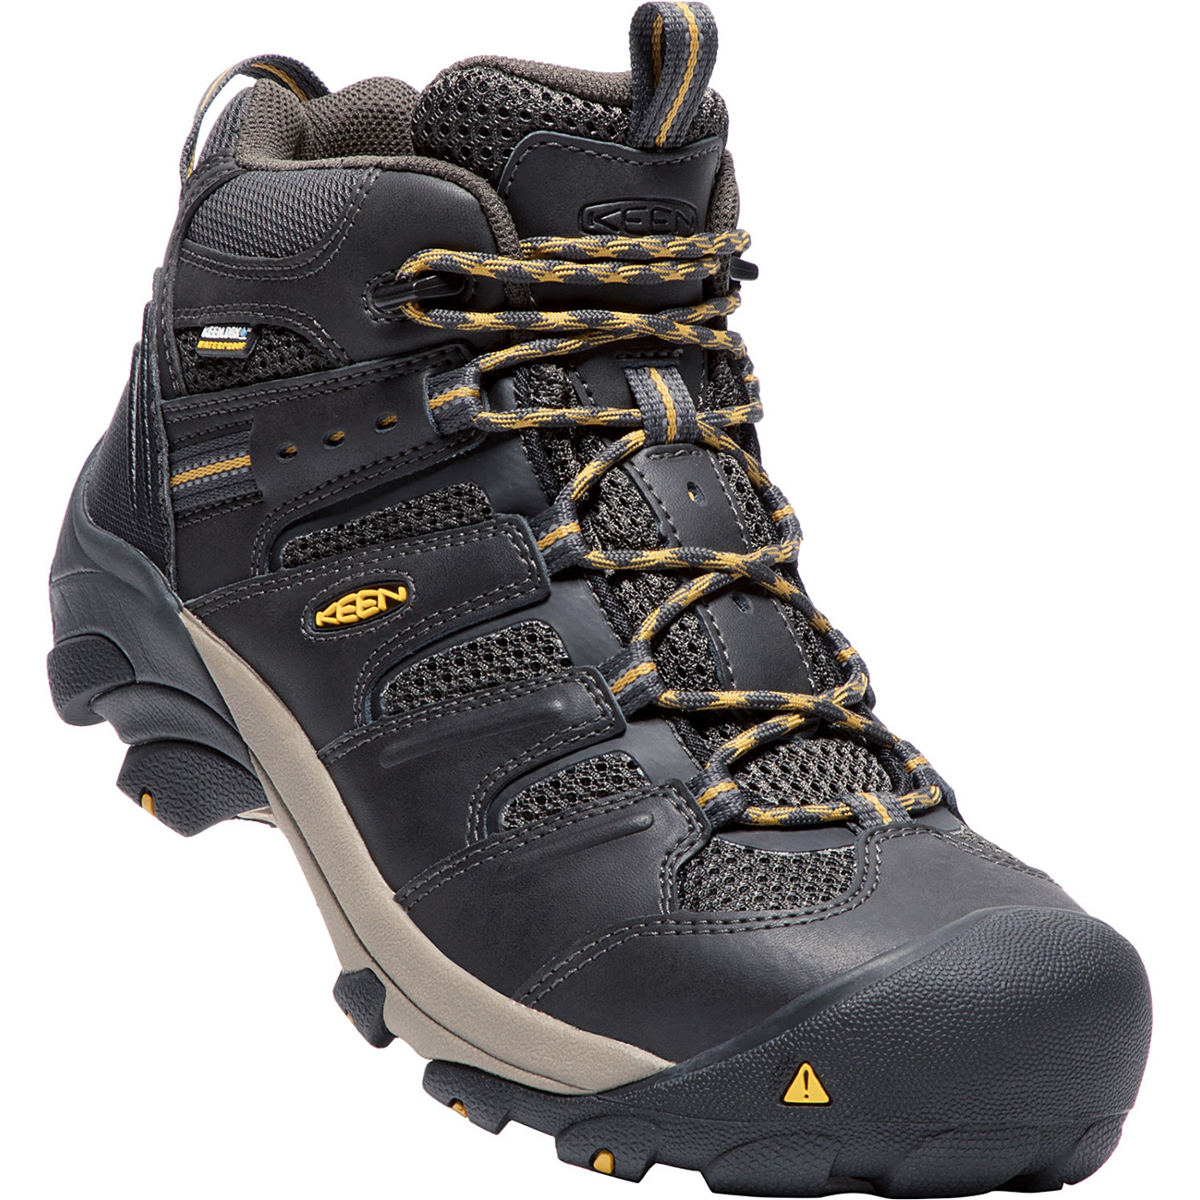 Keen Men's Lansing Waterproof Mid Steel Toe Boot - Black, 9.5